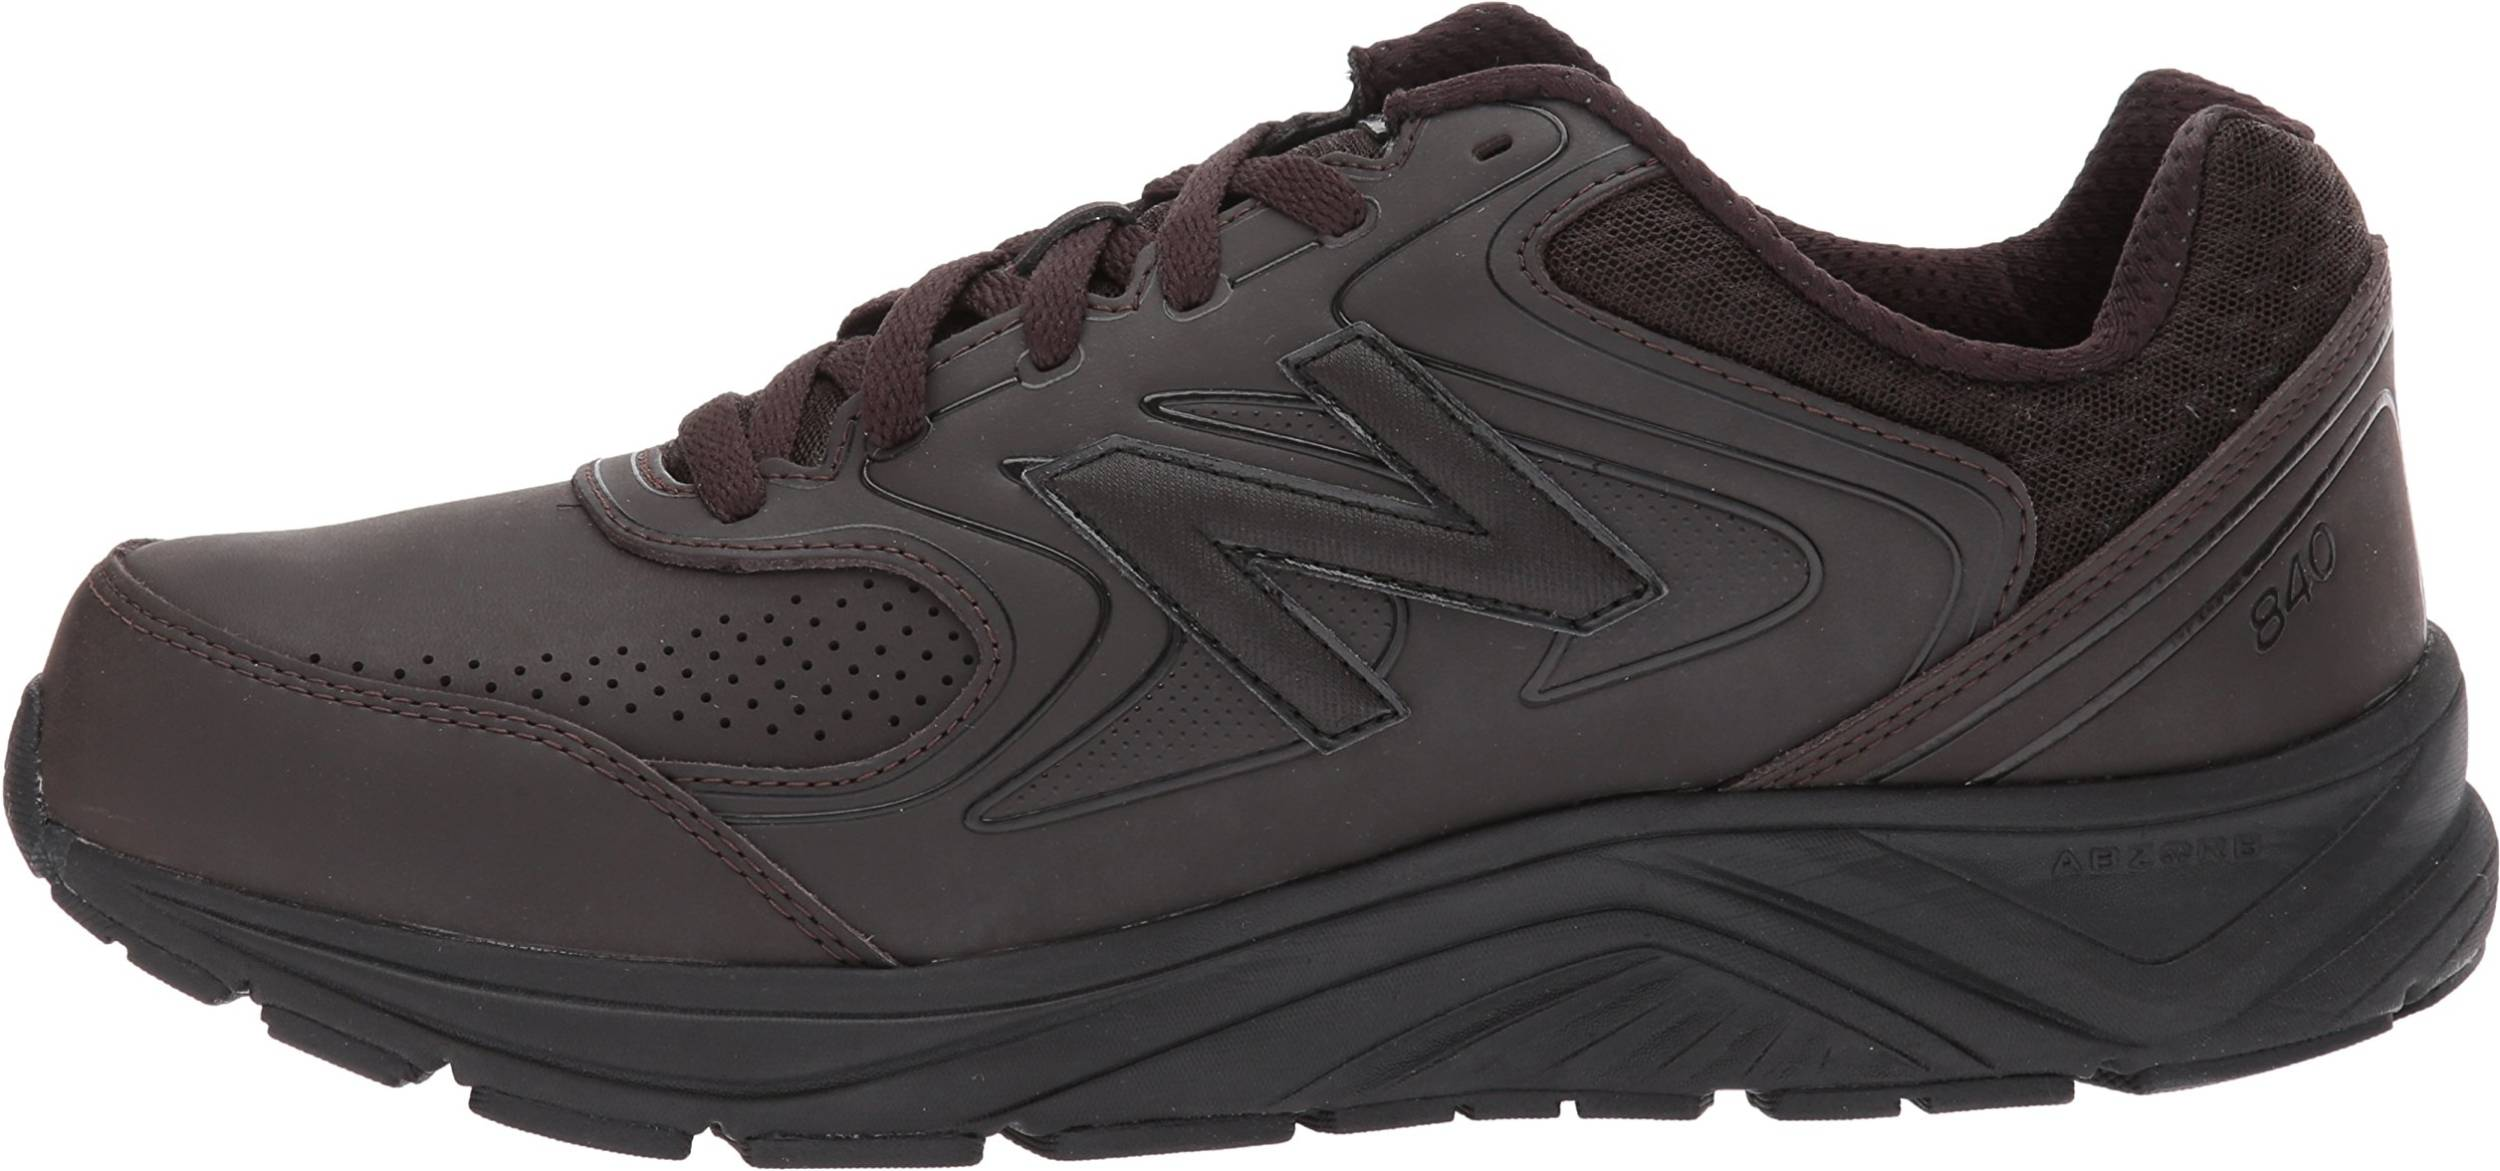 Save 33% on Neutral Walking Shoes (84